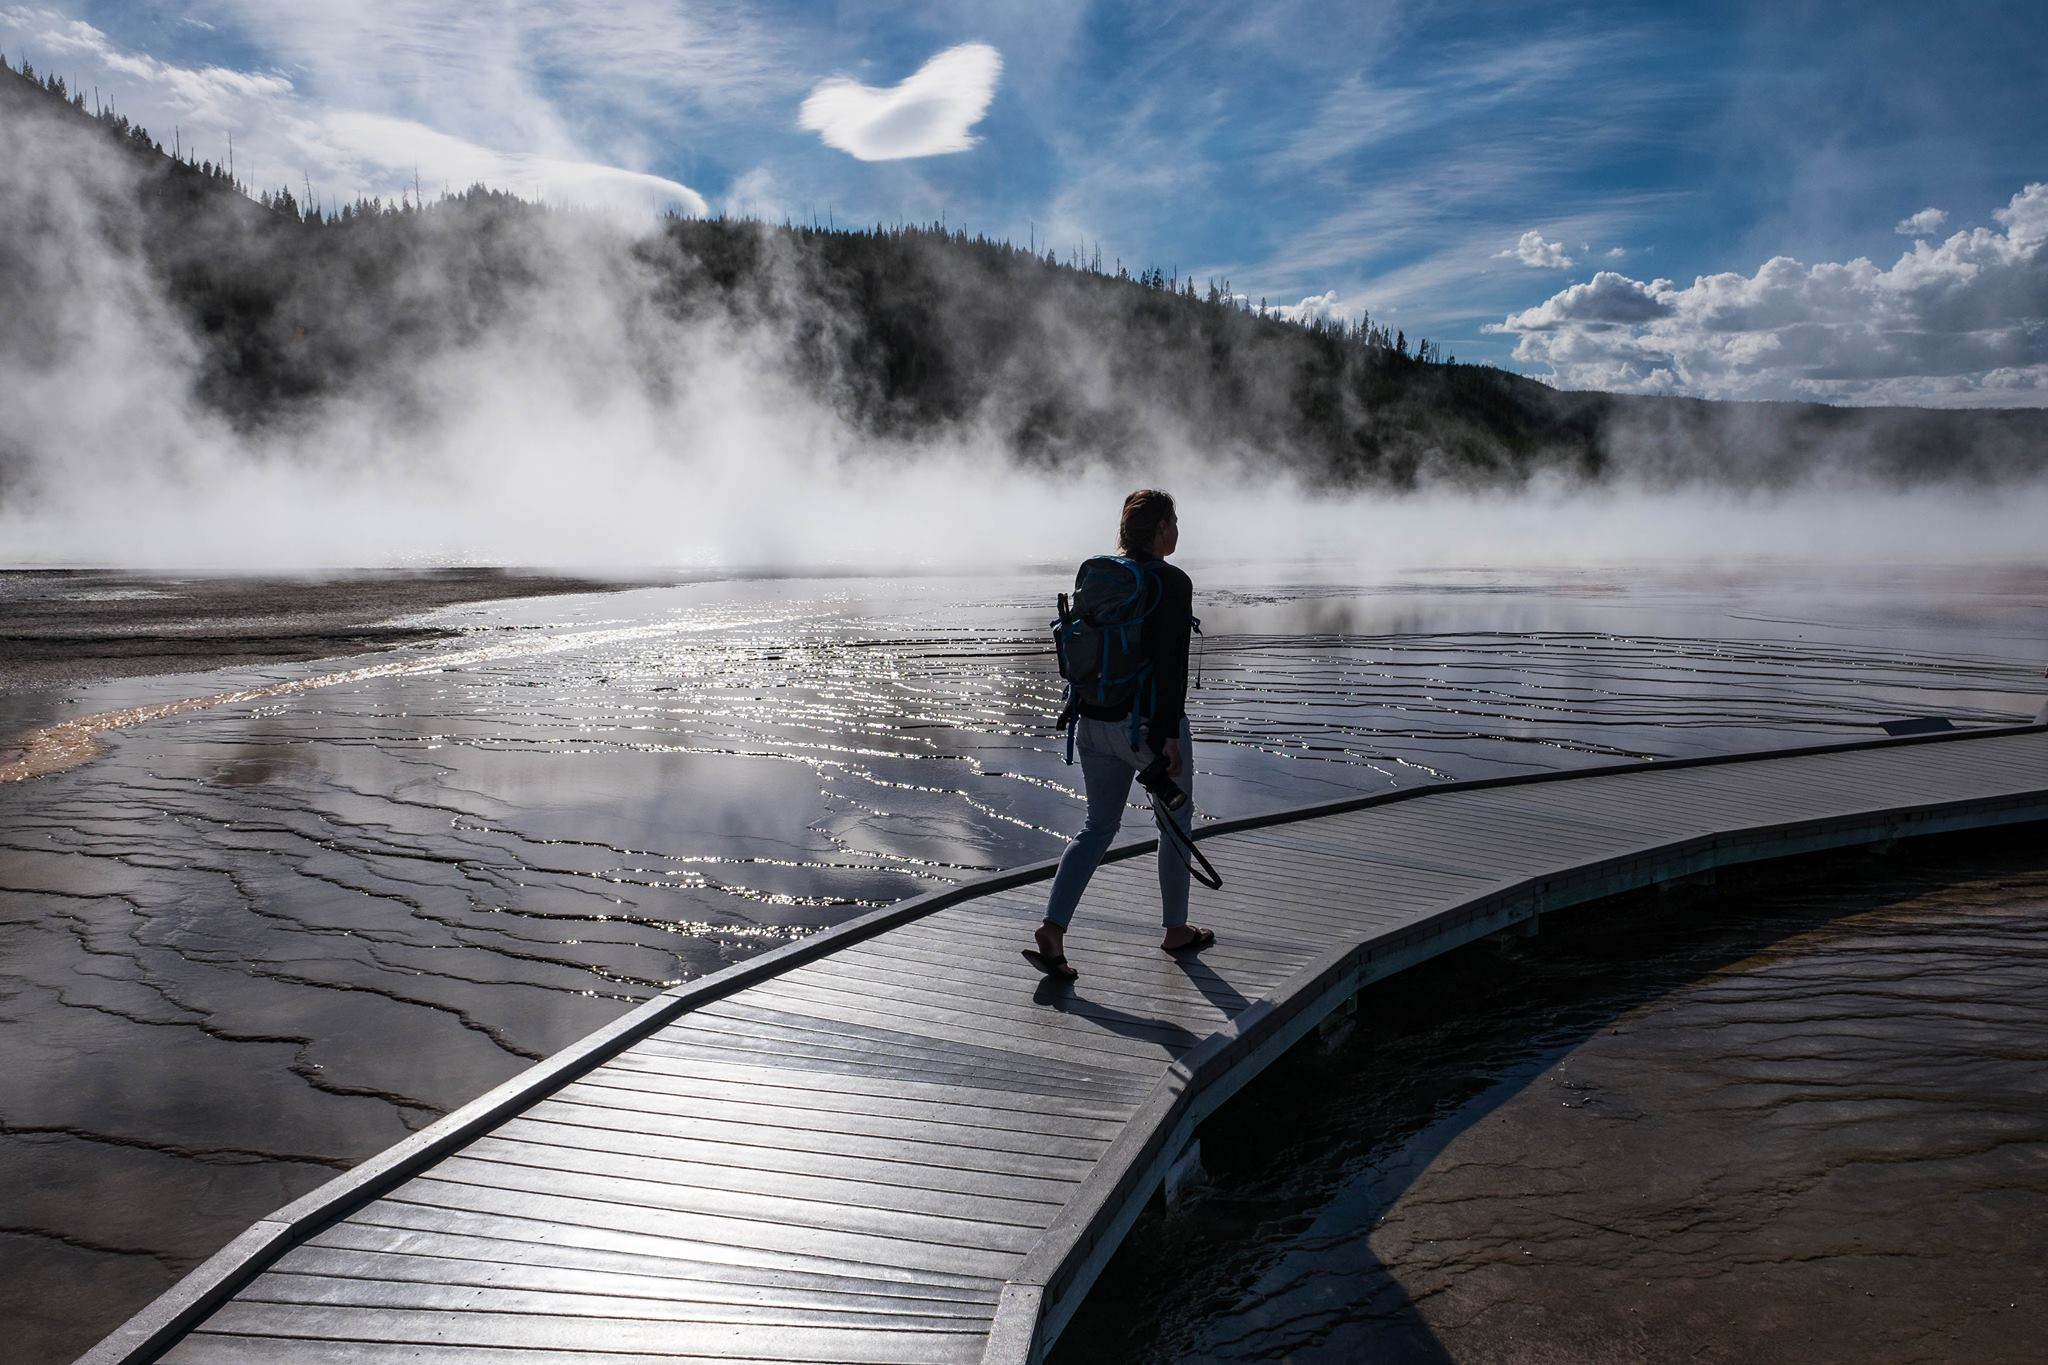 Walking through the geothermal features at Grand Prismatic Spring at Yellowstone National Park in Wyoming/Montana/Idaho